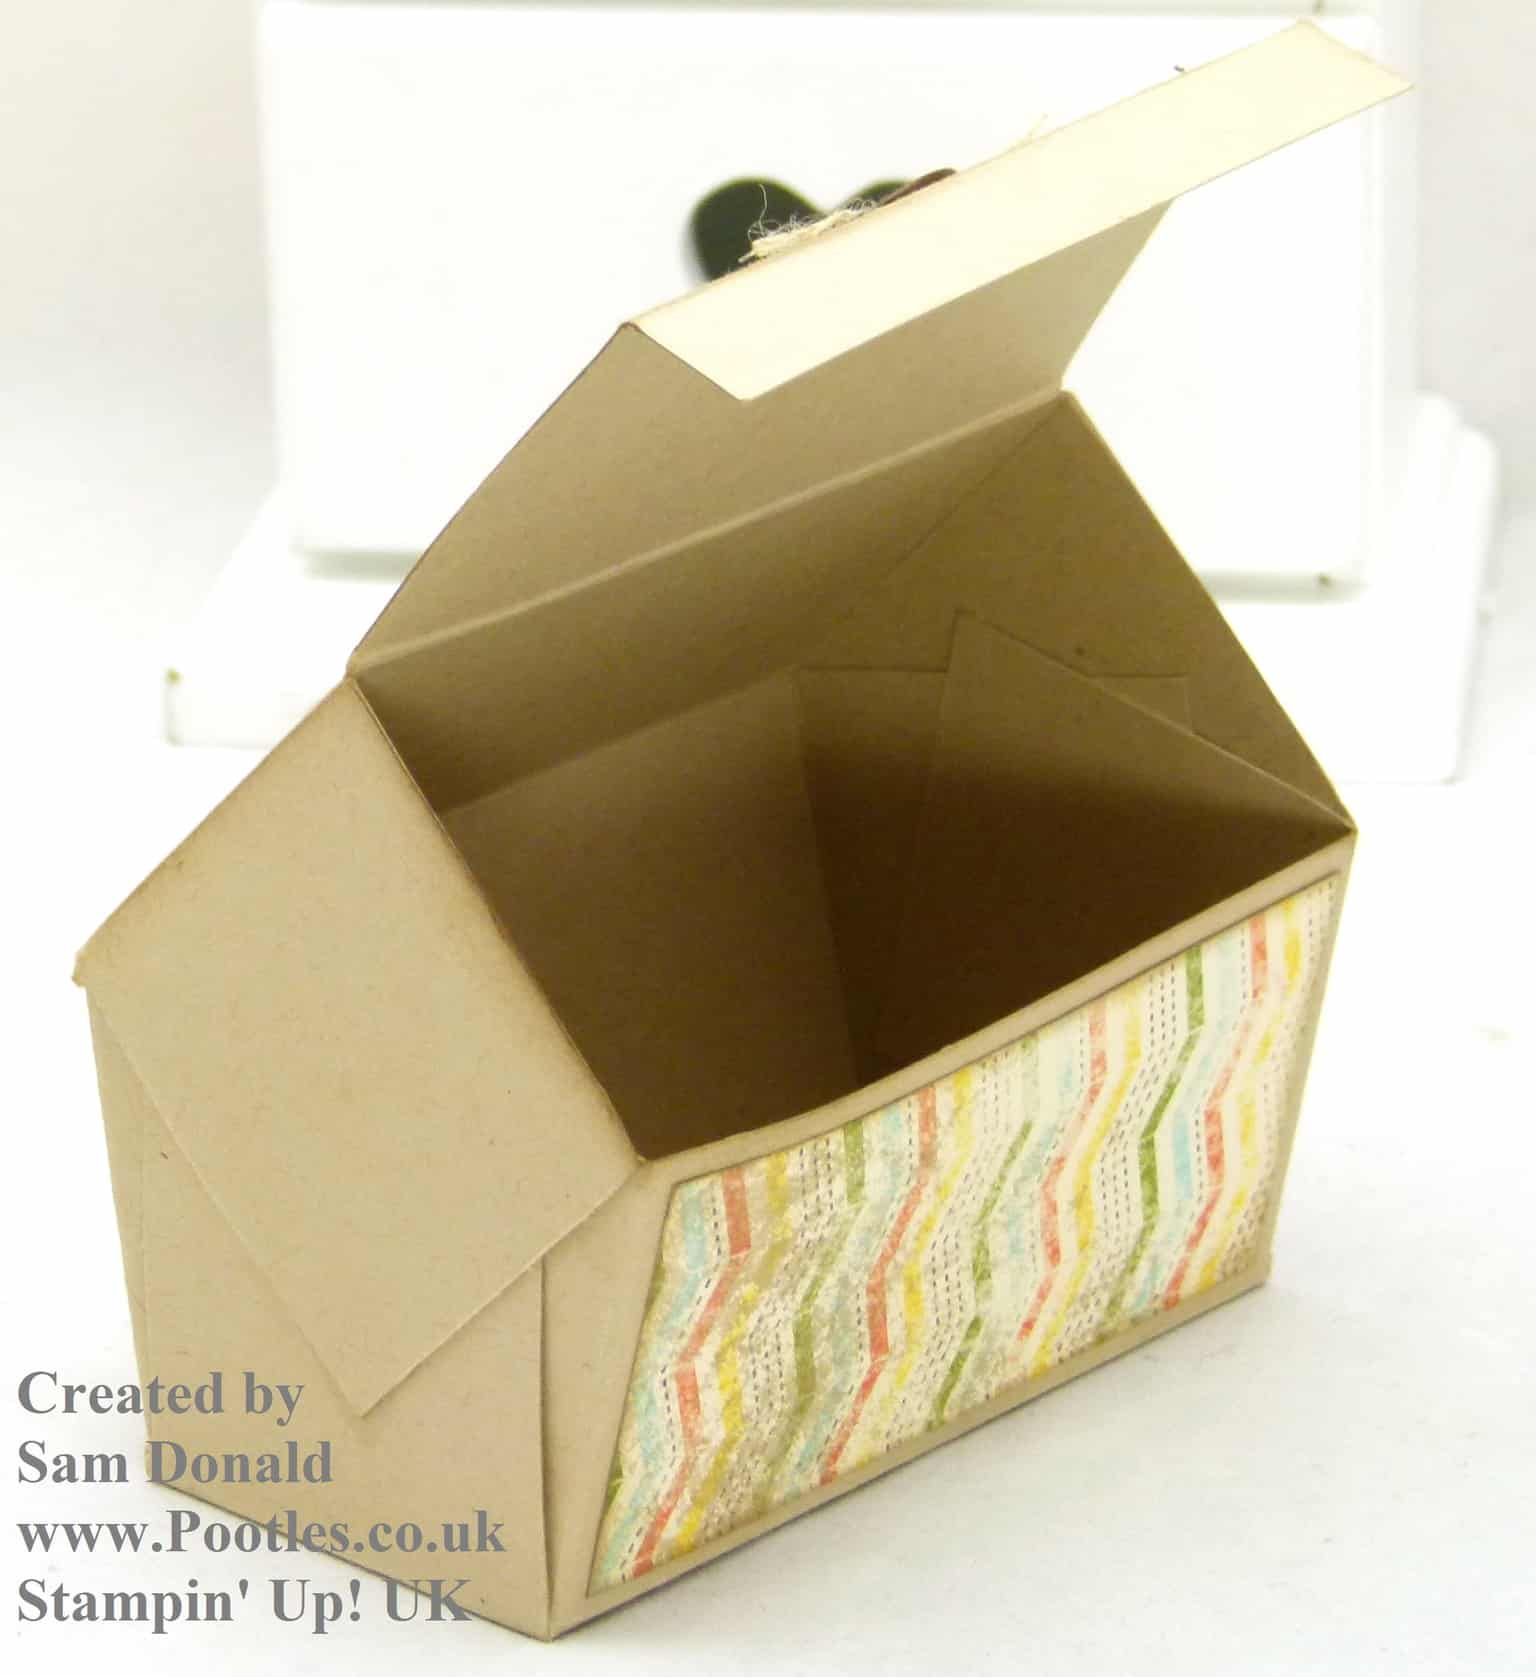 Pootles Stampin Up UK Pentagonal Treasure Chest Keepsake Box Tutorial 3